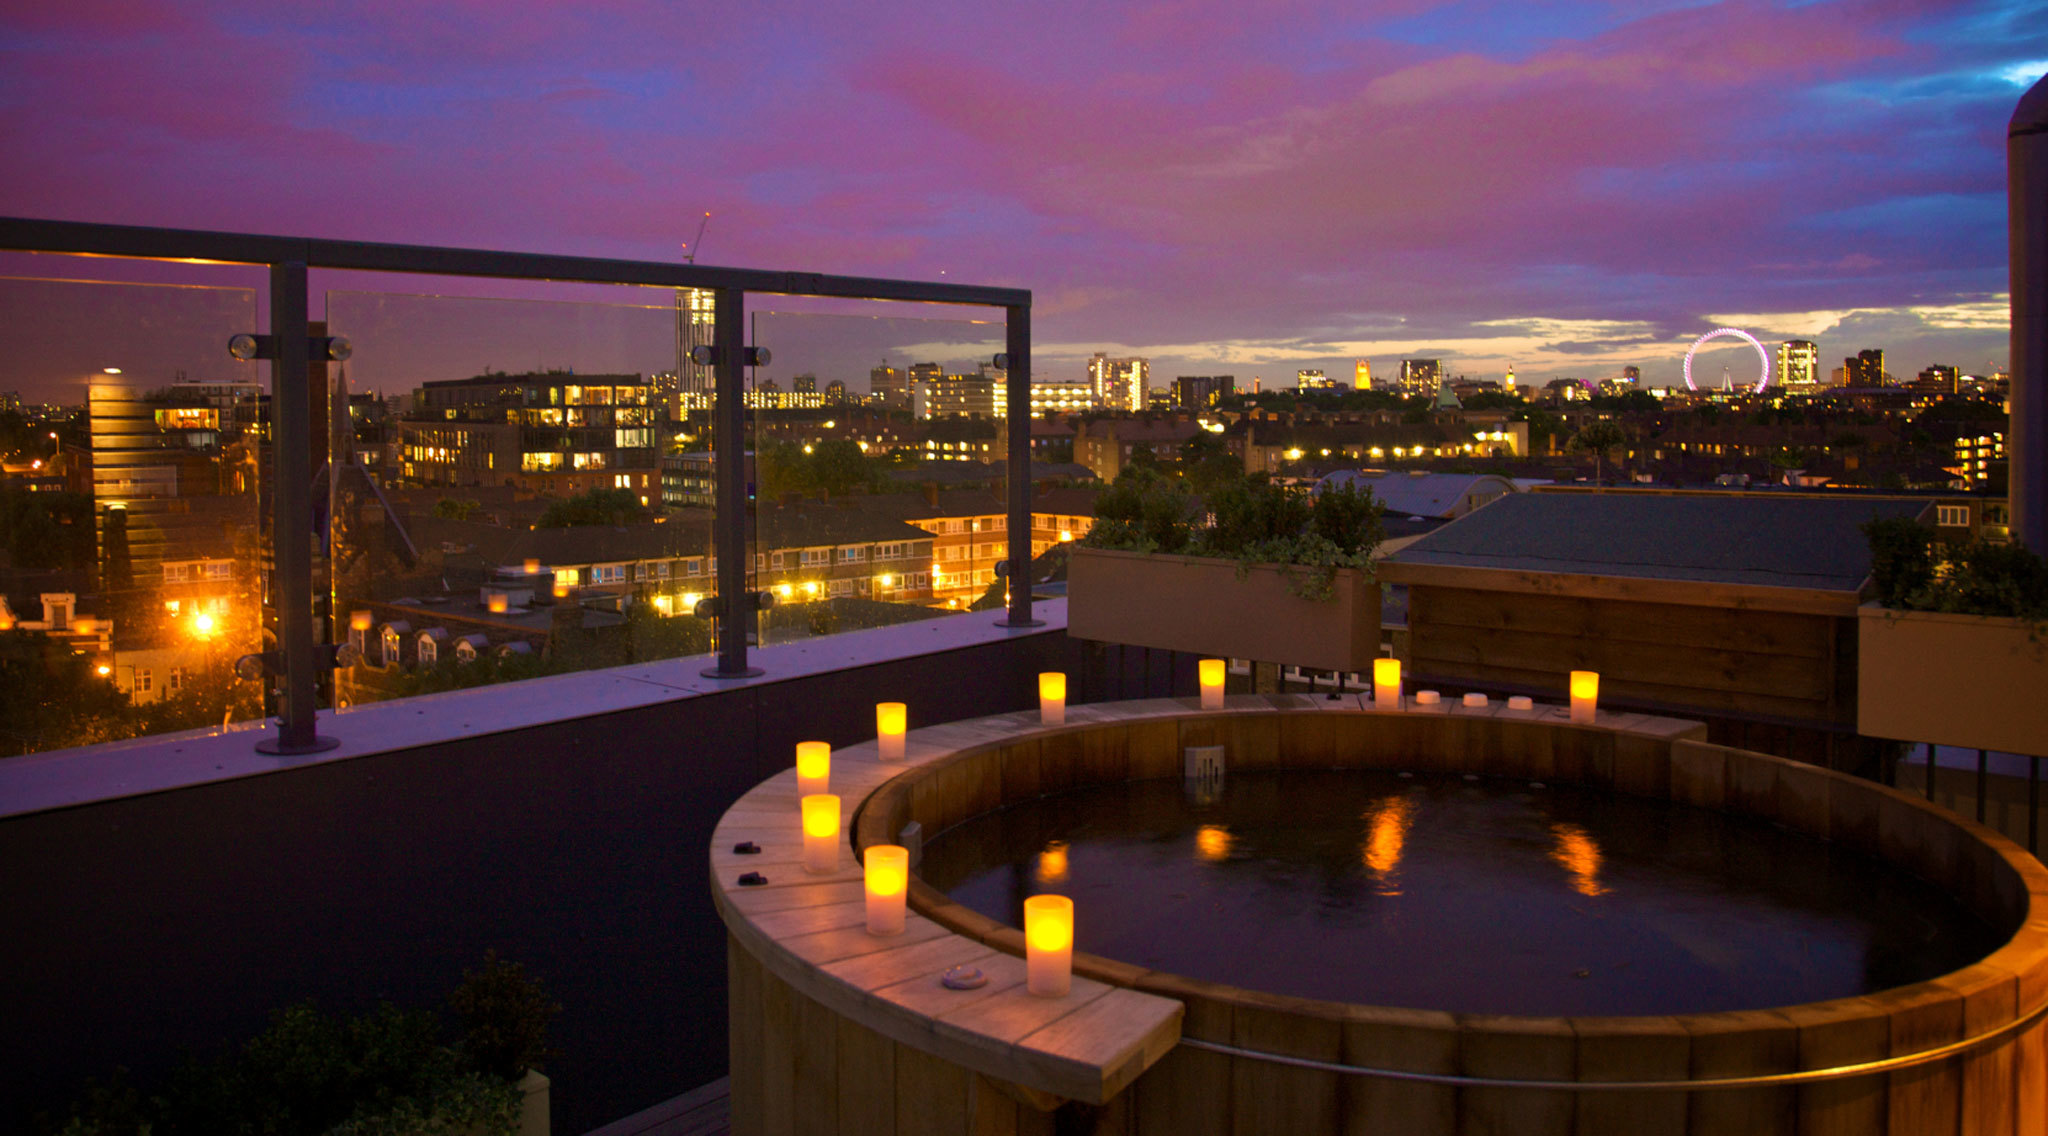 The best London hotels with jacuzzis